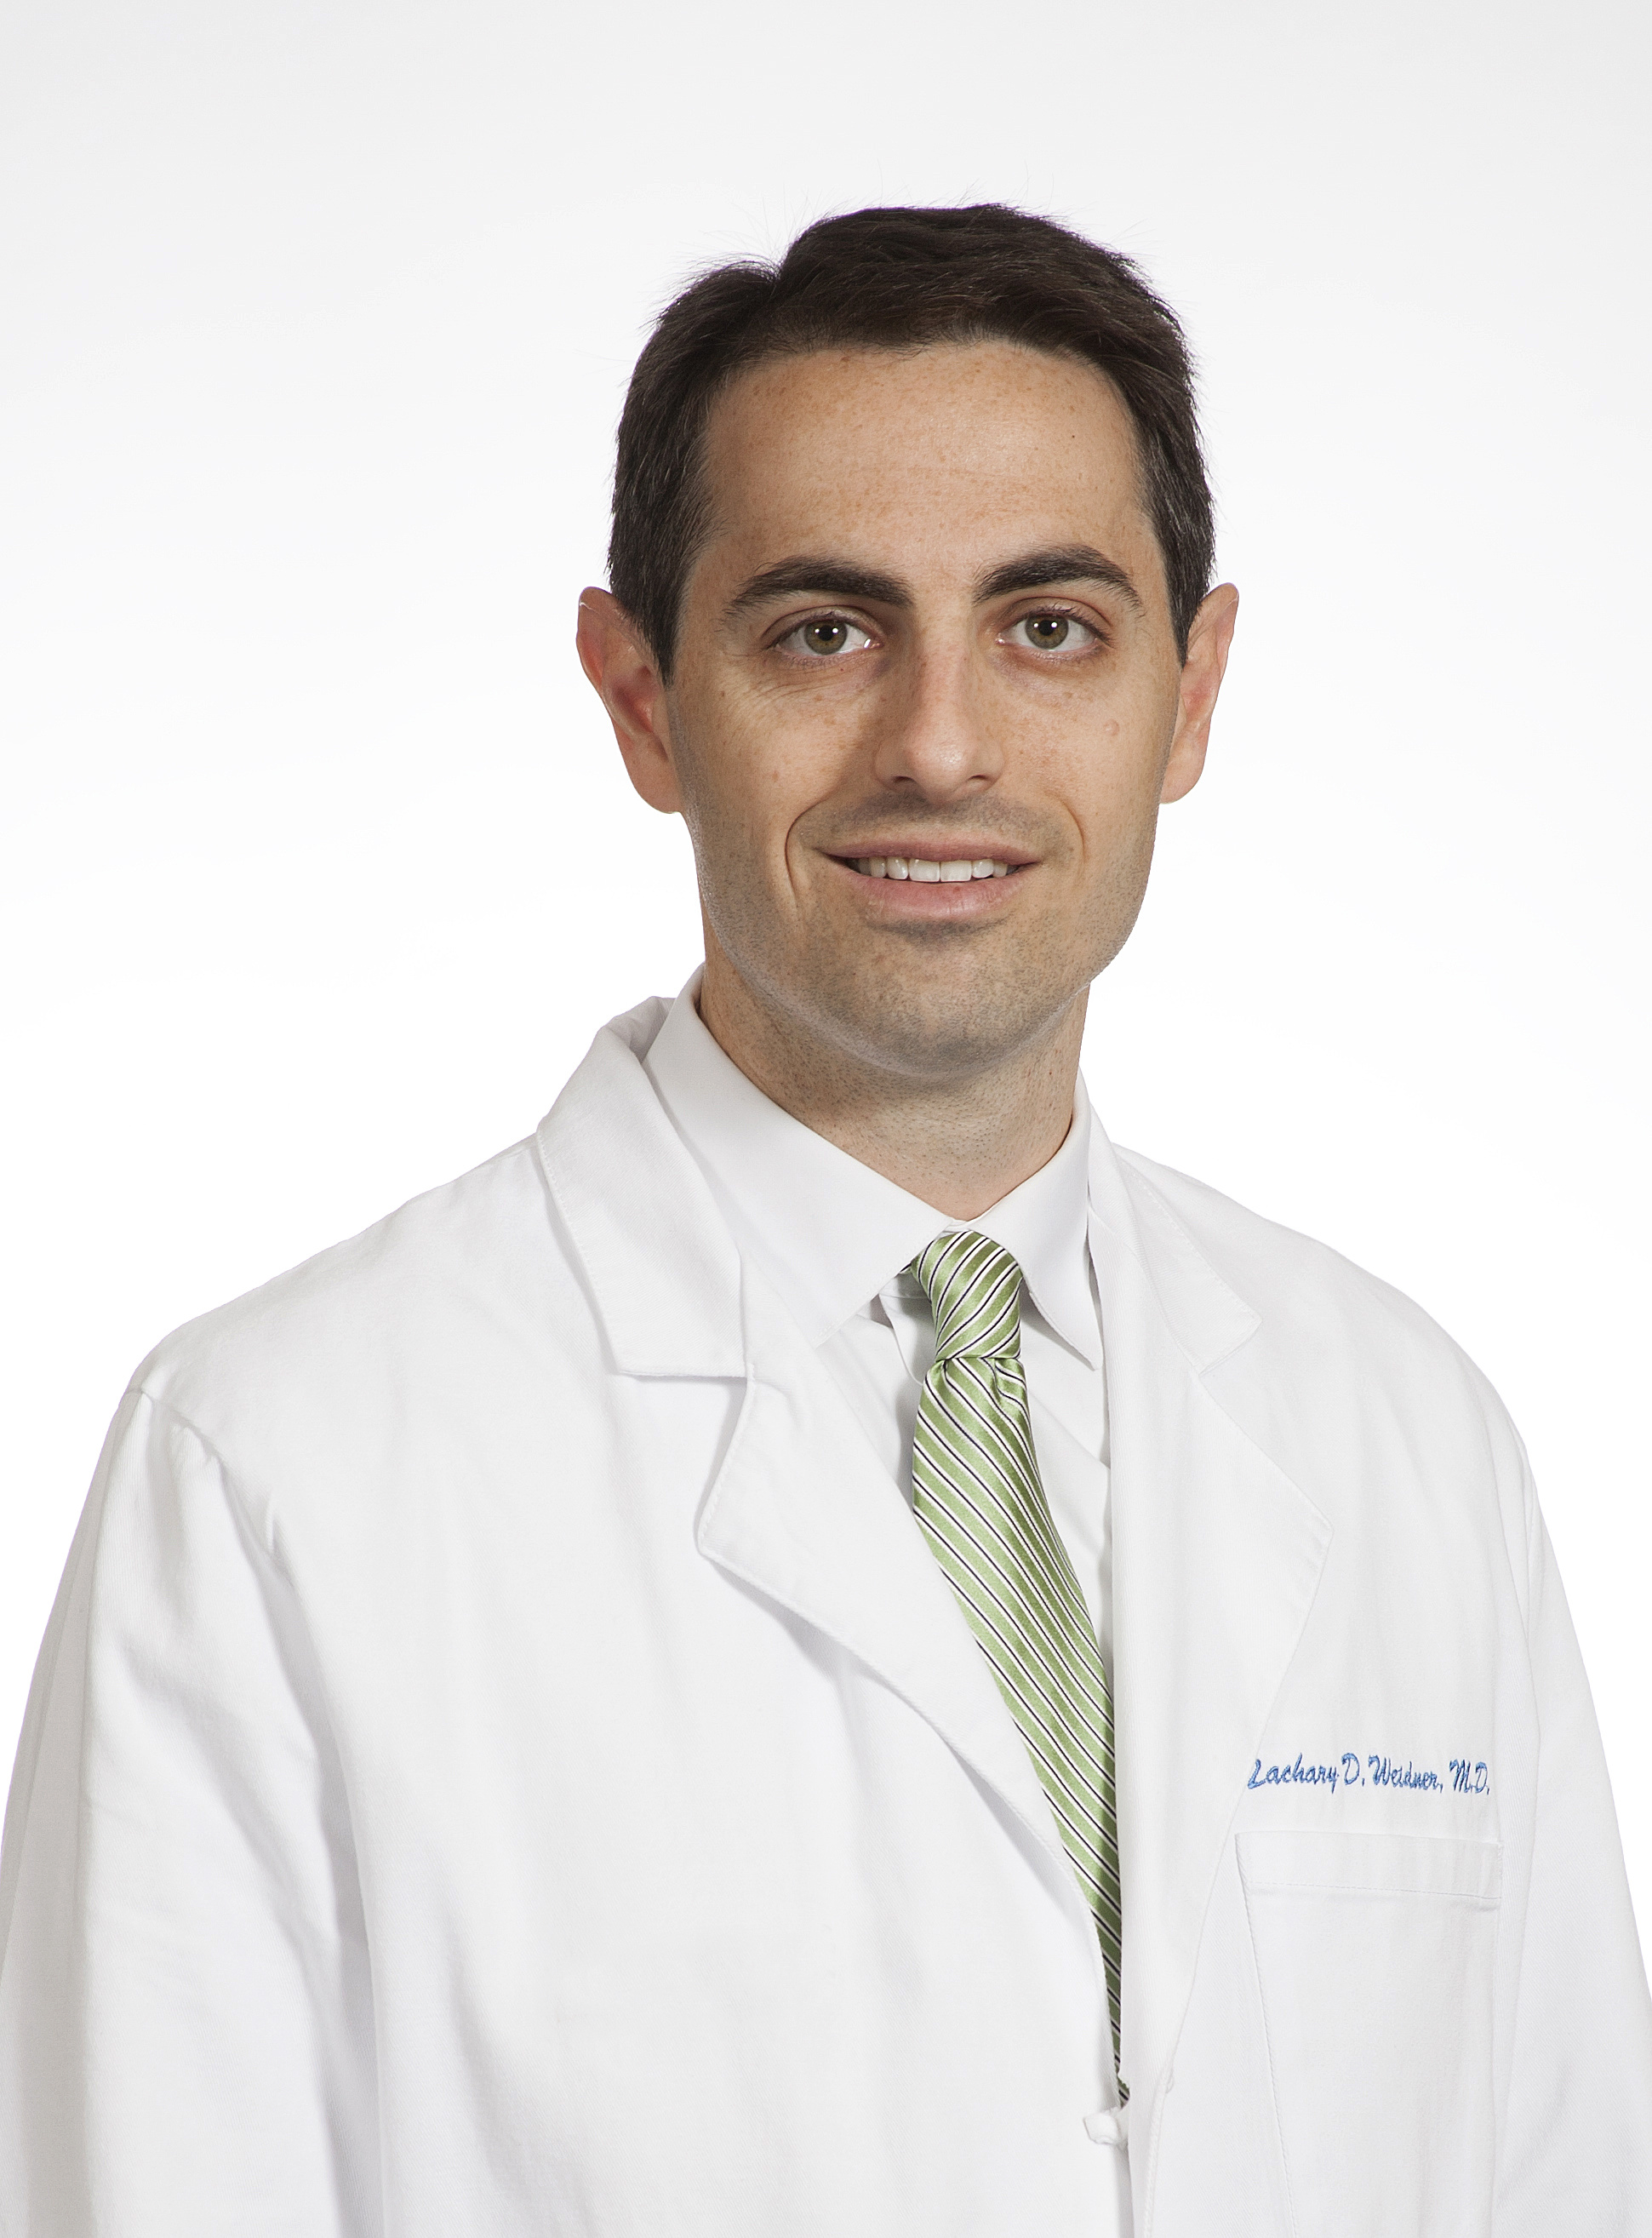 Image of Dr. Zachary Weidner M.D.